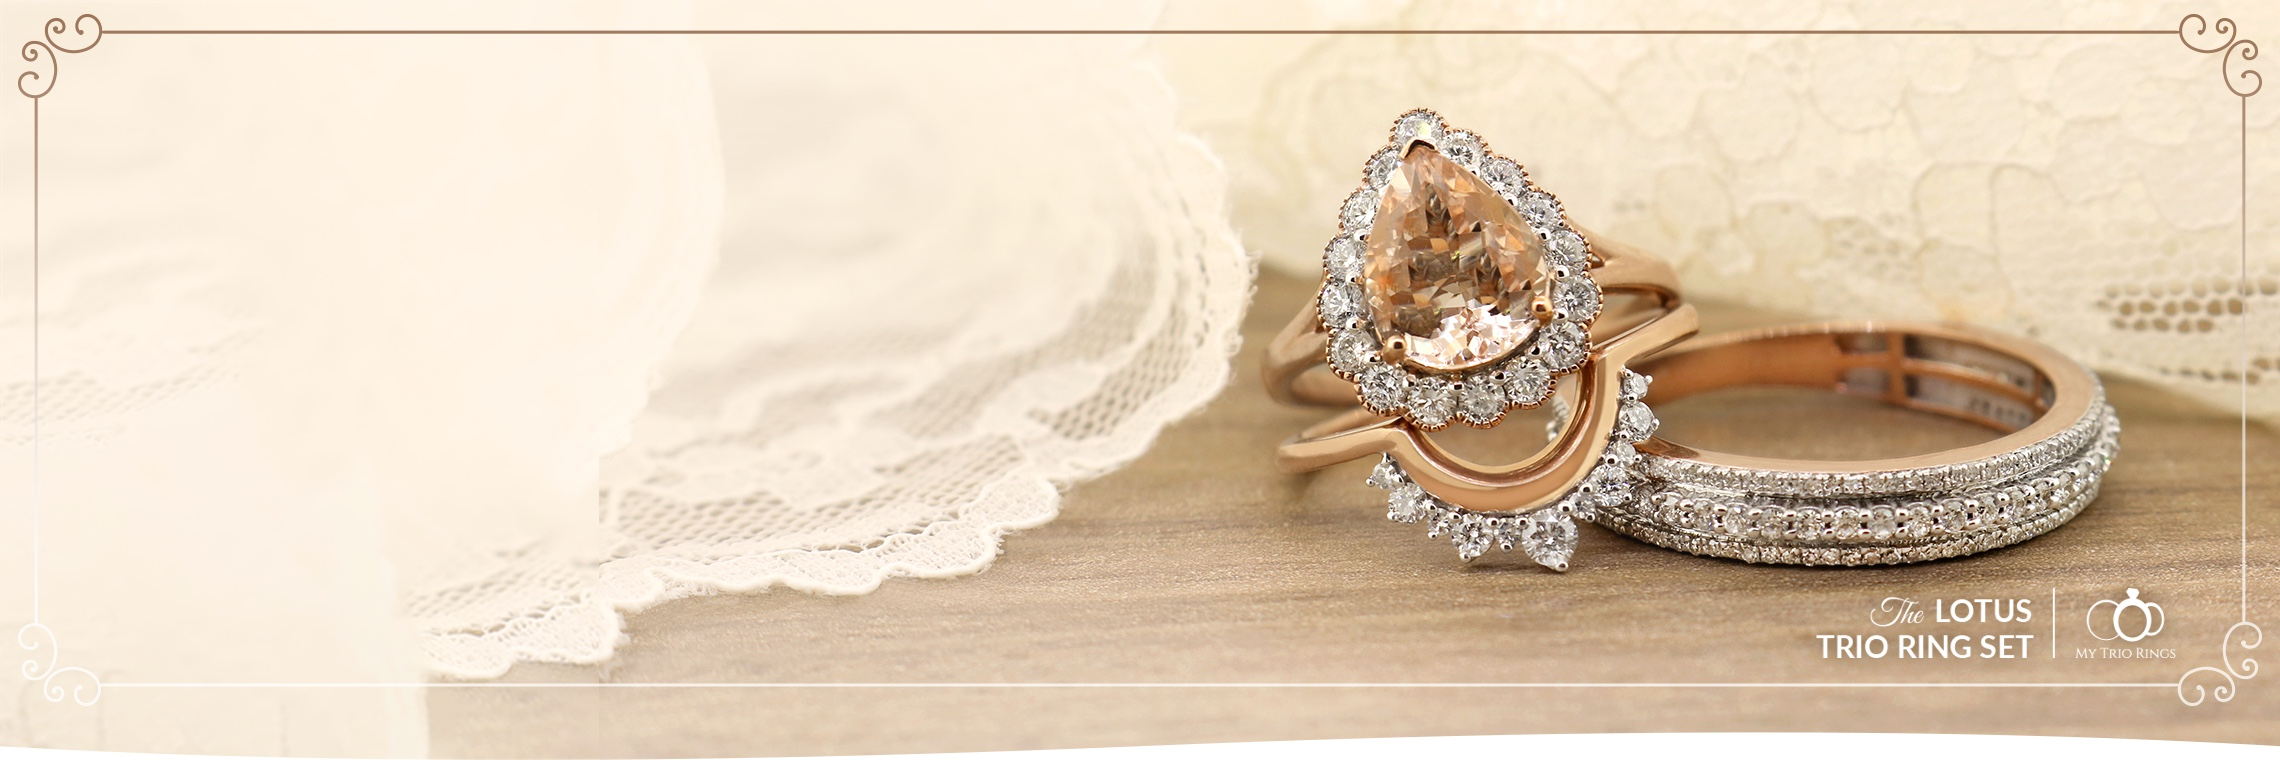 My Trio Rings Morganite Collection